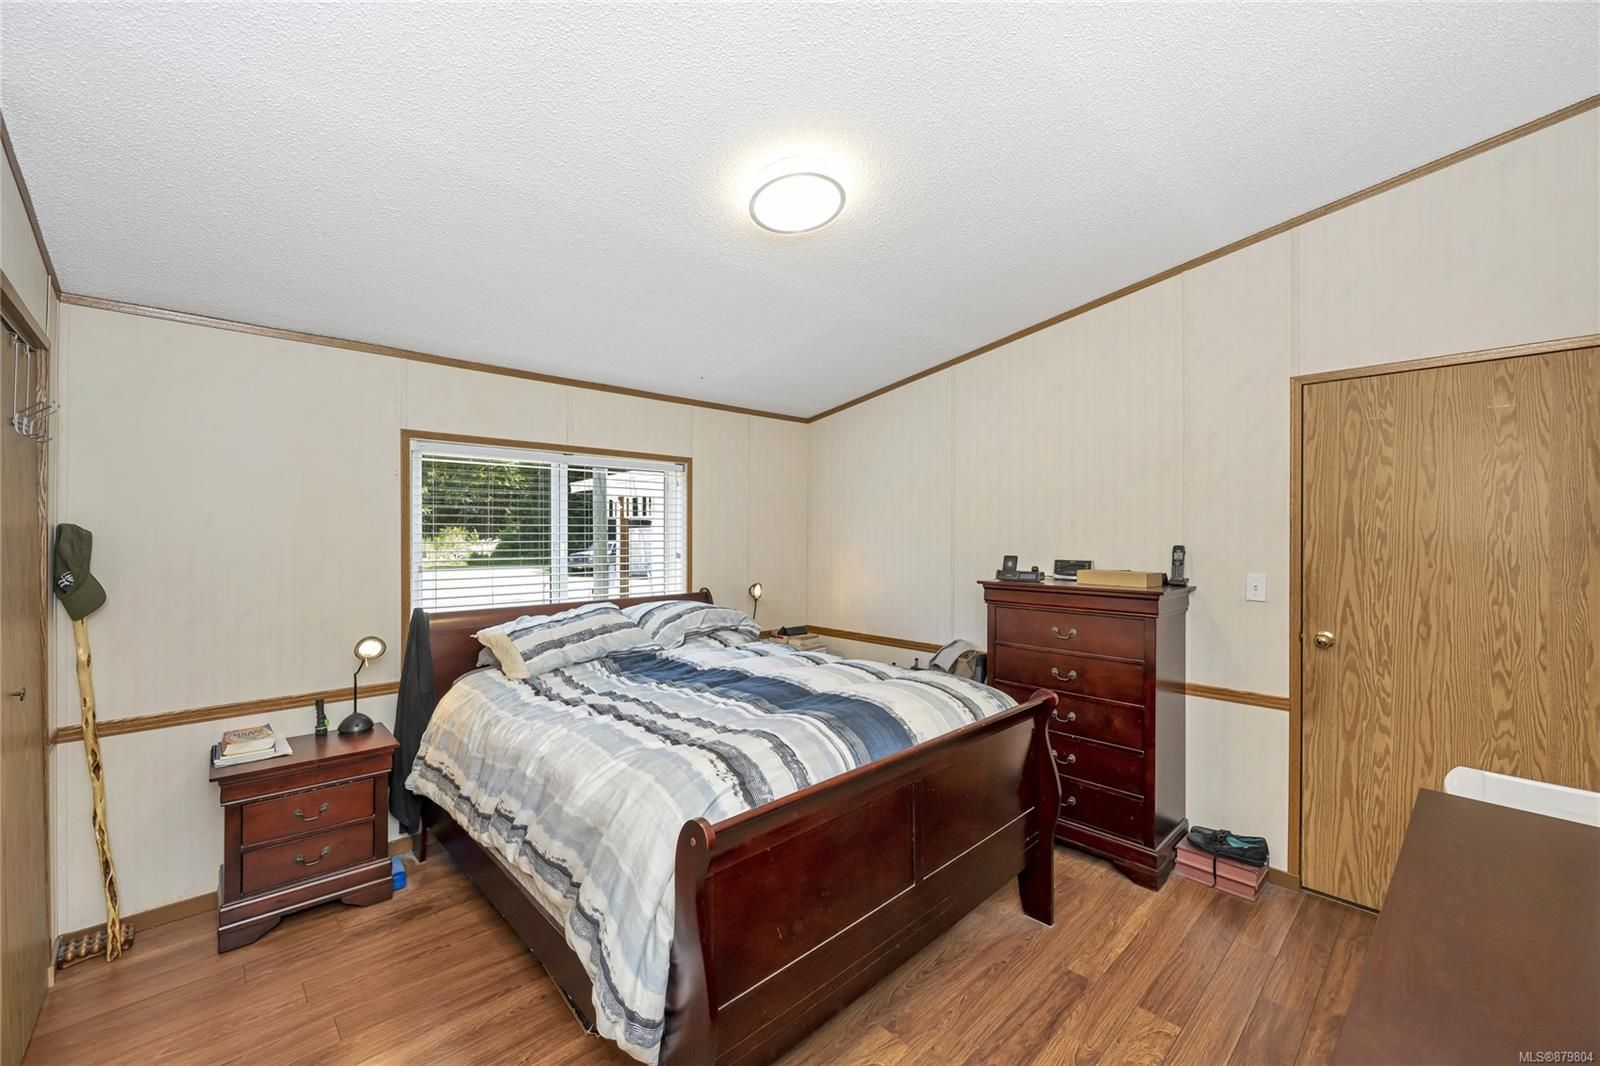 Photo 30: Photos: 3596 Riverside Rd in : ML Cobble Hill Manufactured Home for sale (Malahat & Area)  : MLS®# 879804